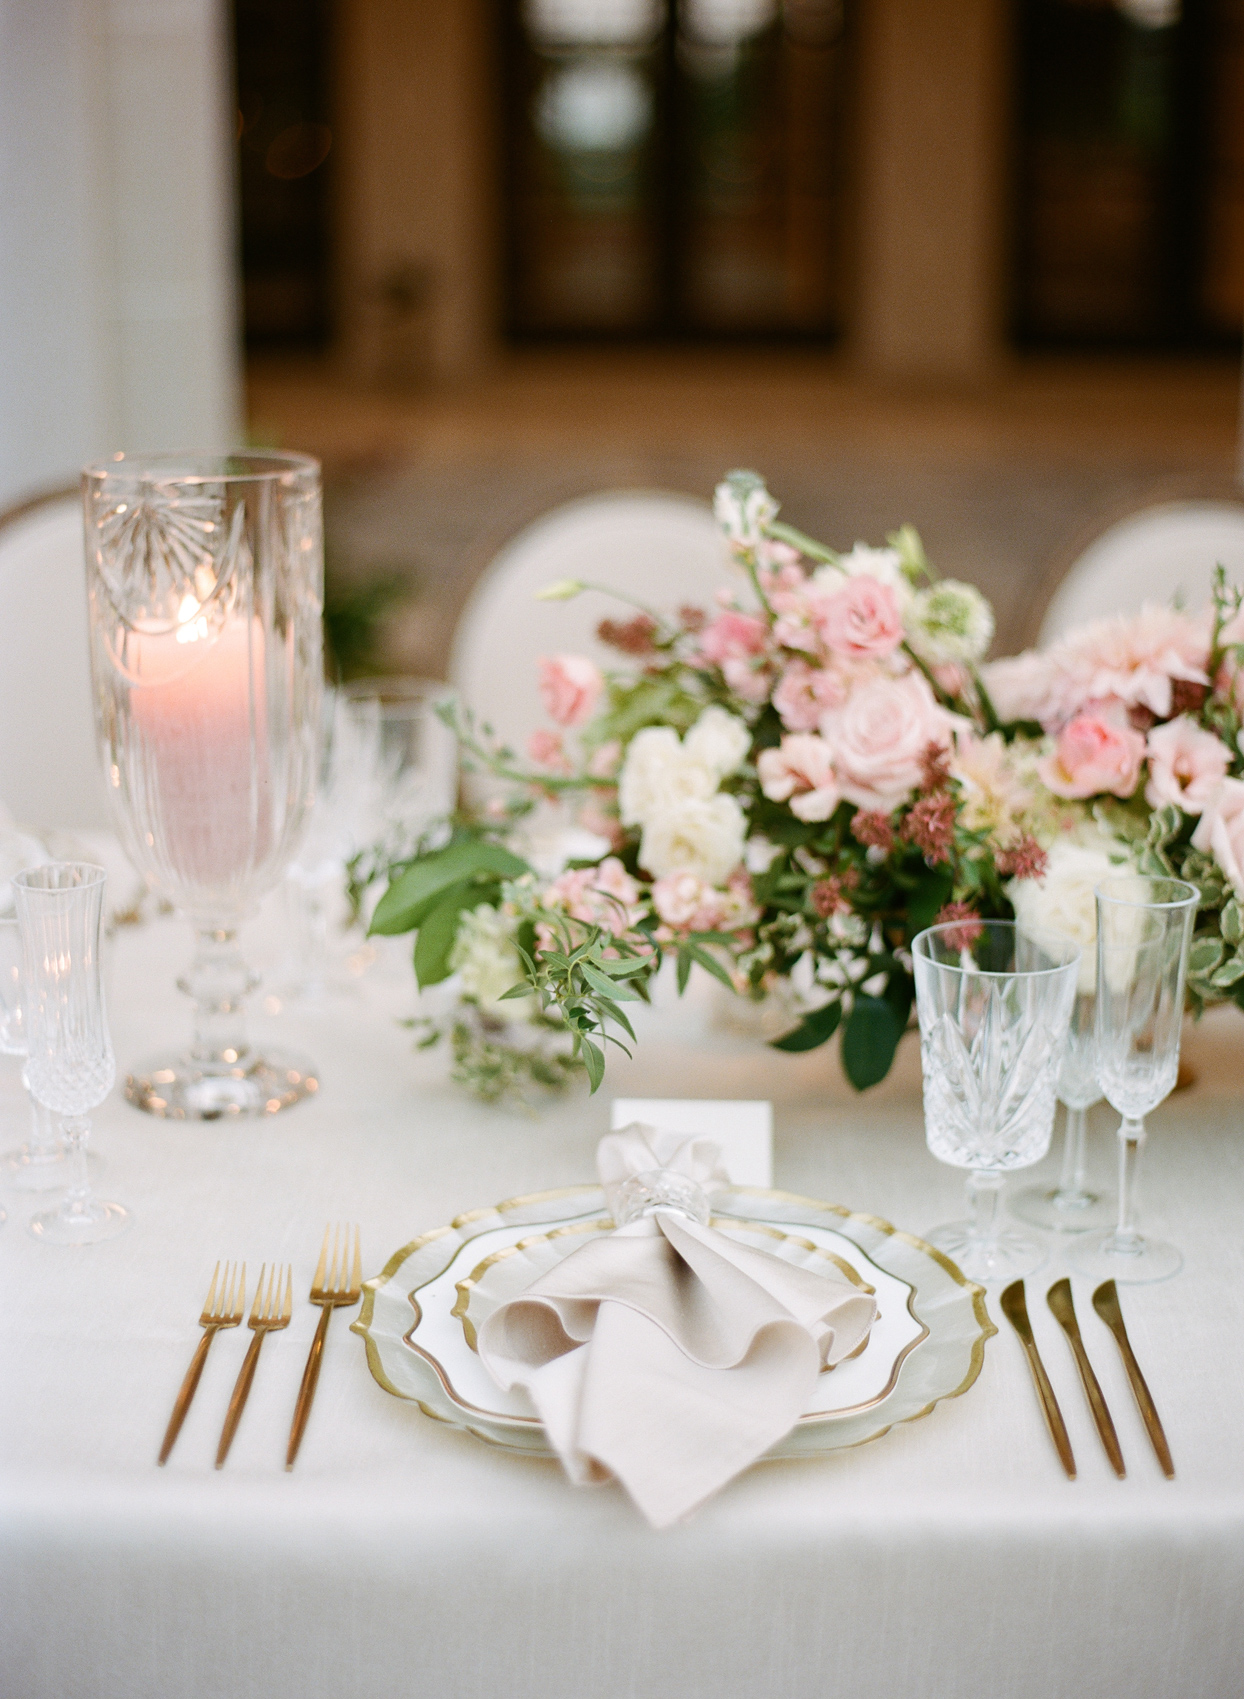 table setting with gold rimmed plates and gold silverware